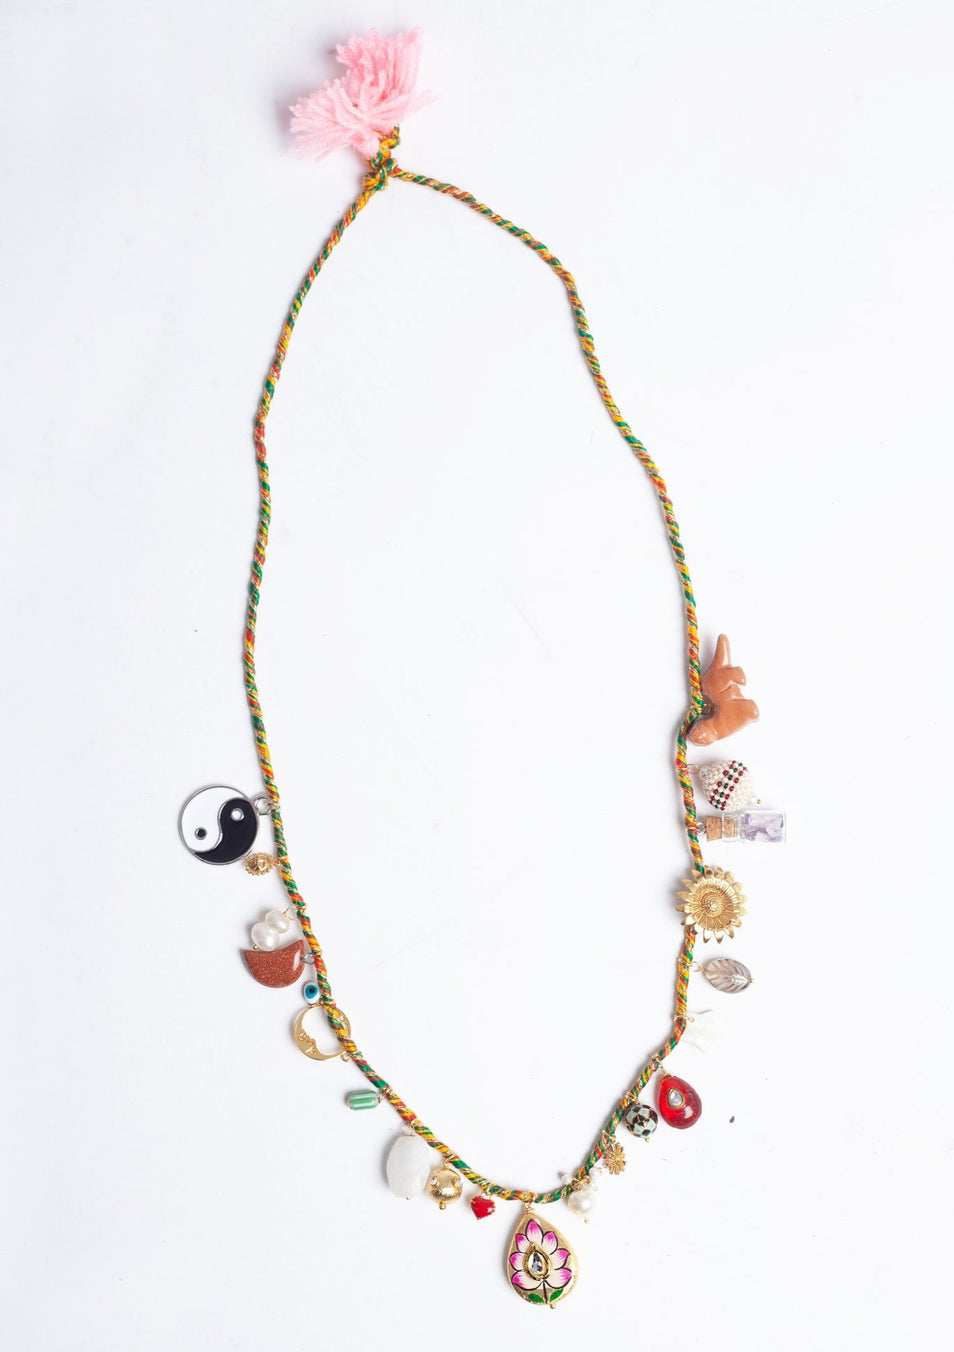 Orange Vert 'Sparkle Gris-Gris' Necklace